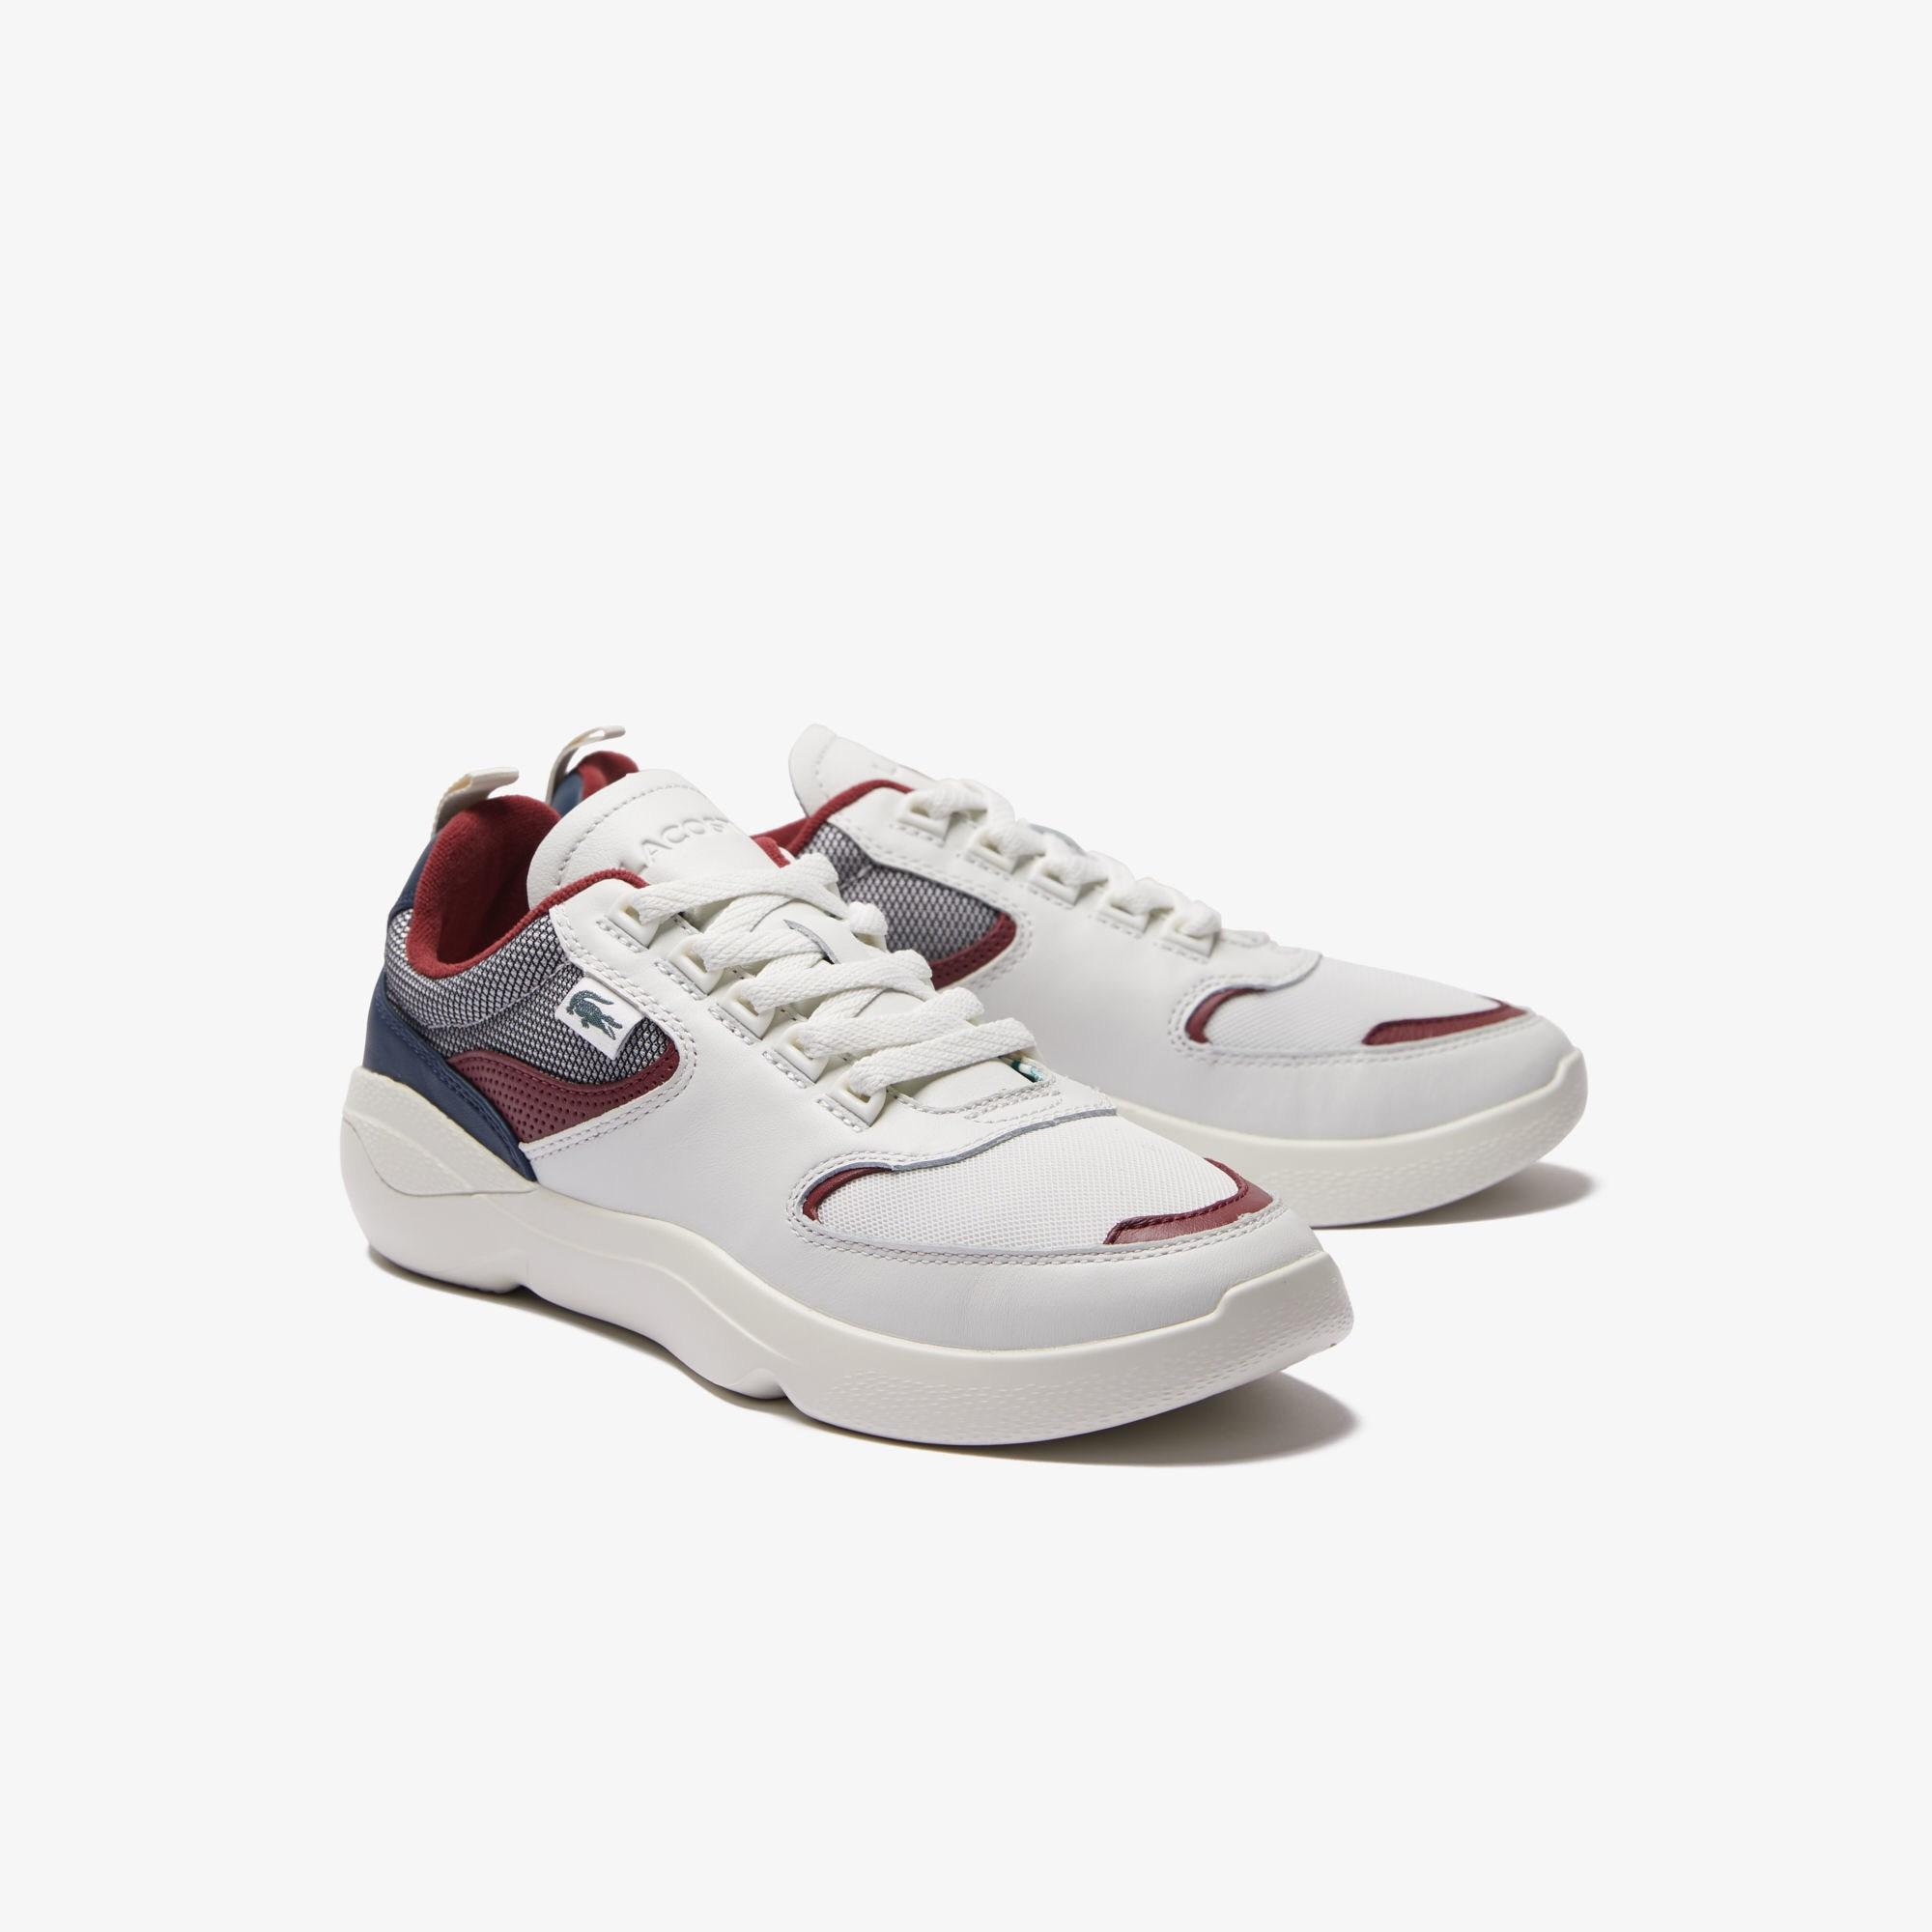 368db5f27 Lacoste - White Wildcard Leather Sneakers for Men - Lyst. View fullscreen